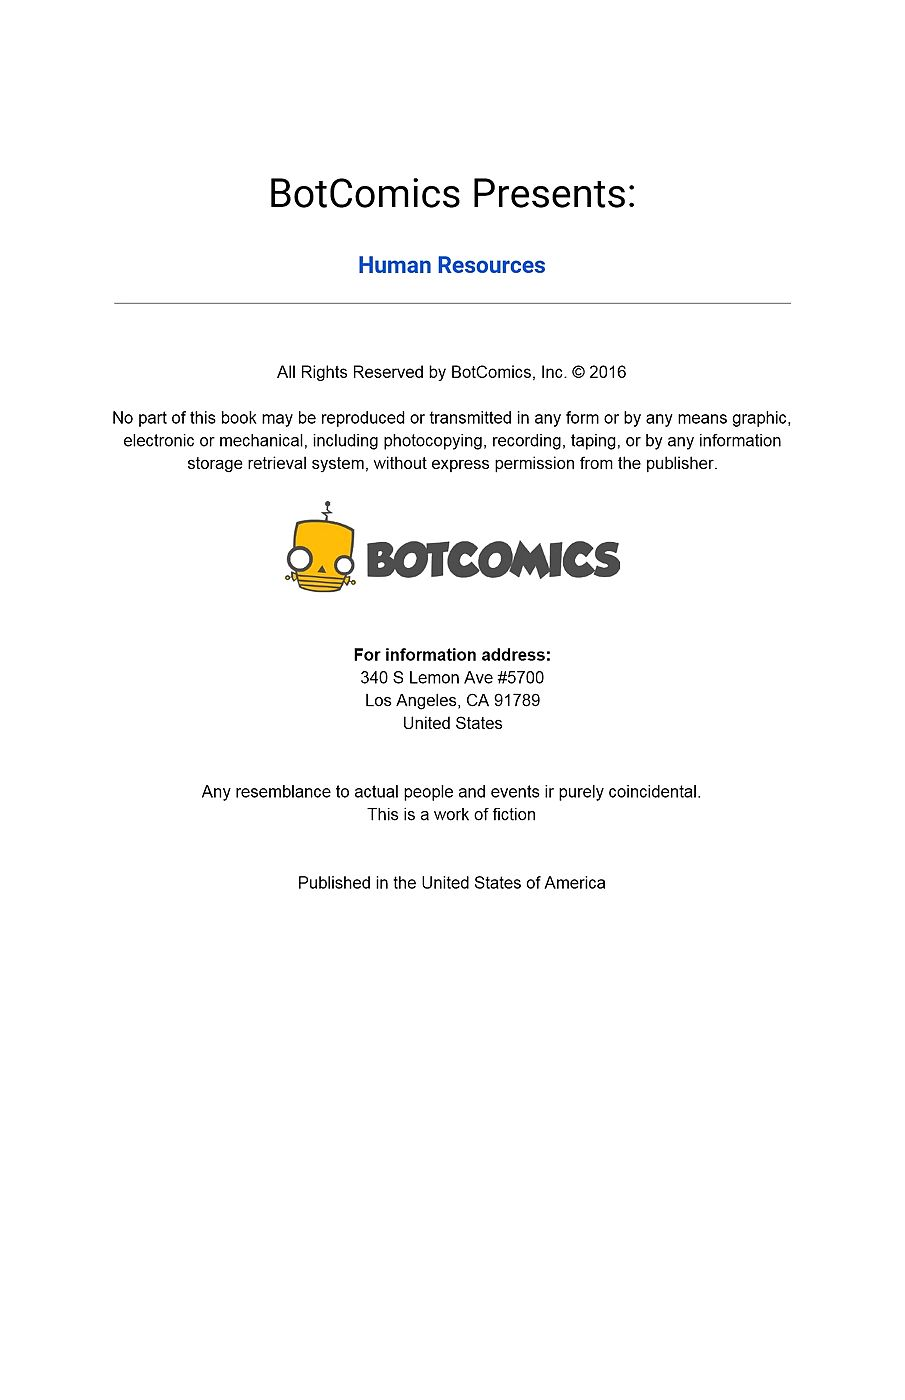 Bot- Human Resources